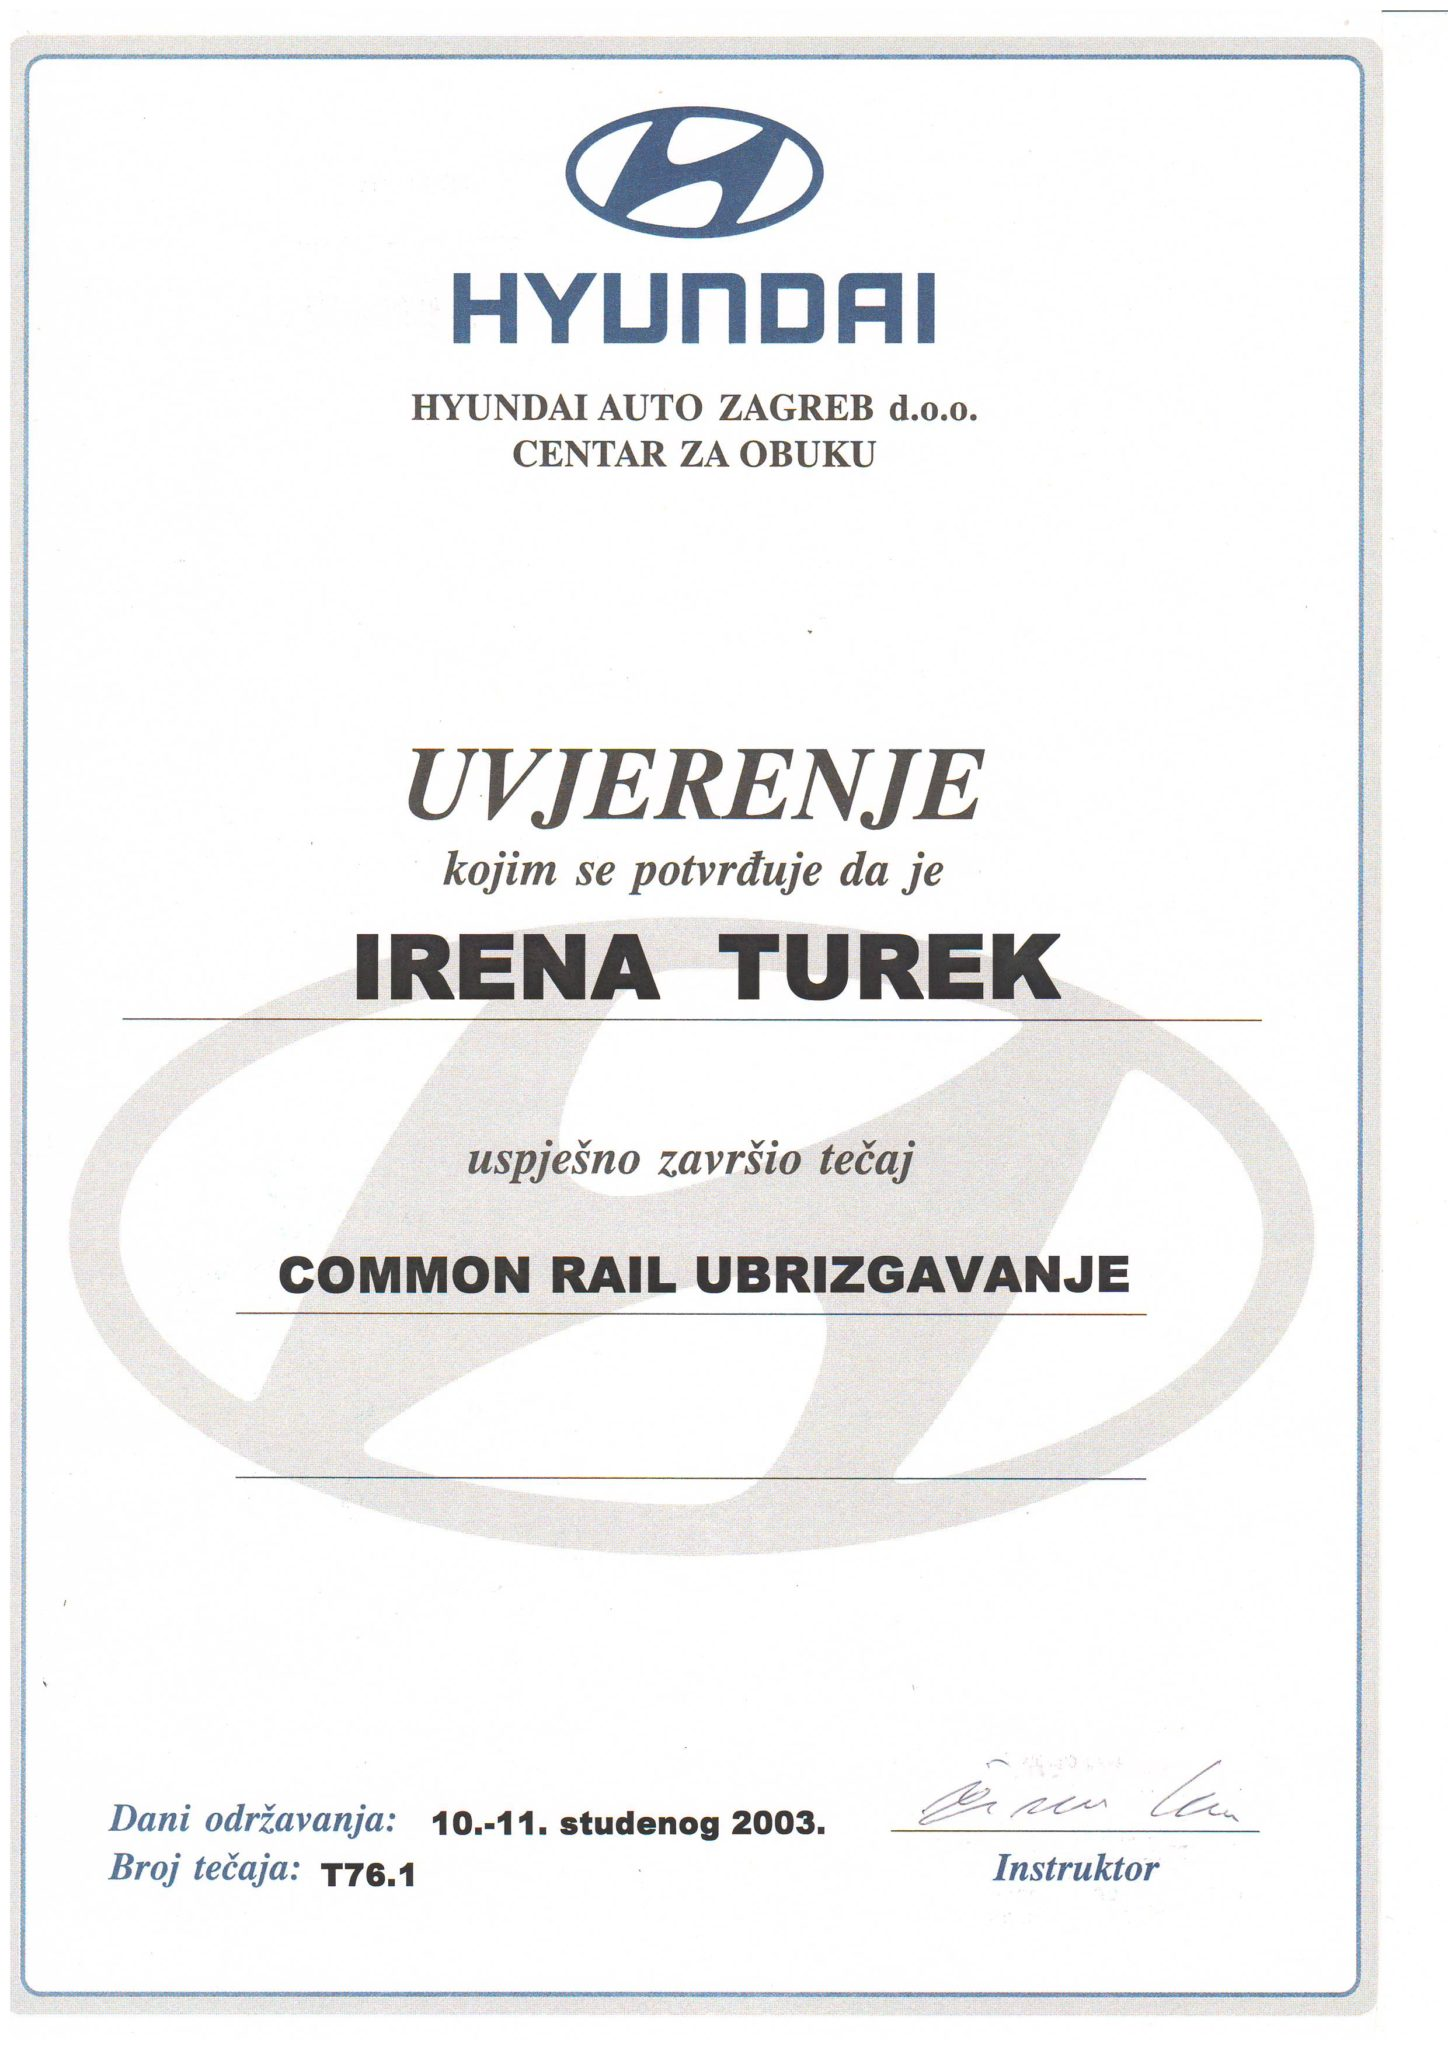 Picture of Hyundai - Common rail ubrizgavanje